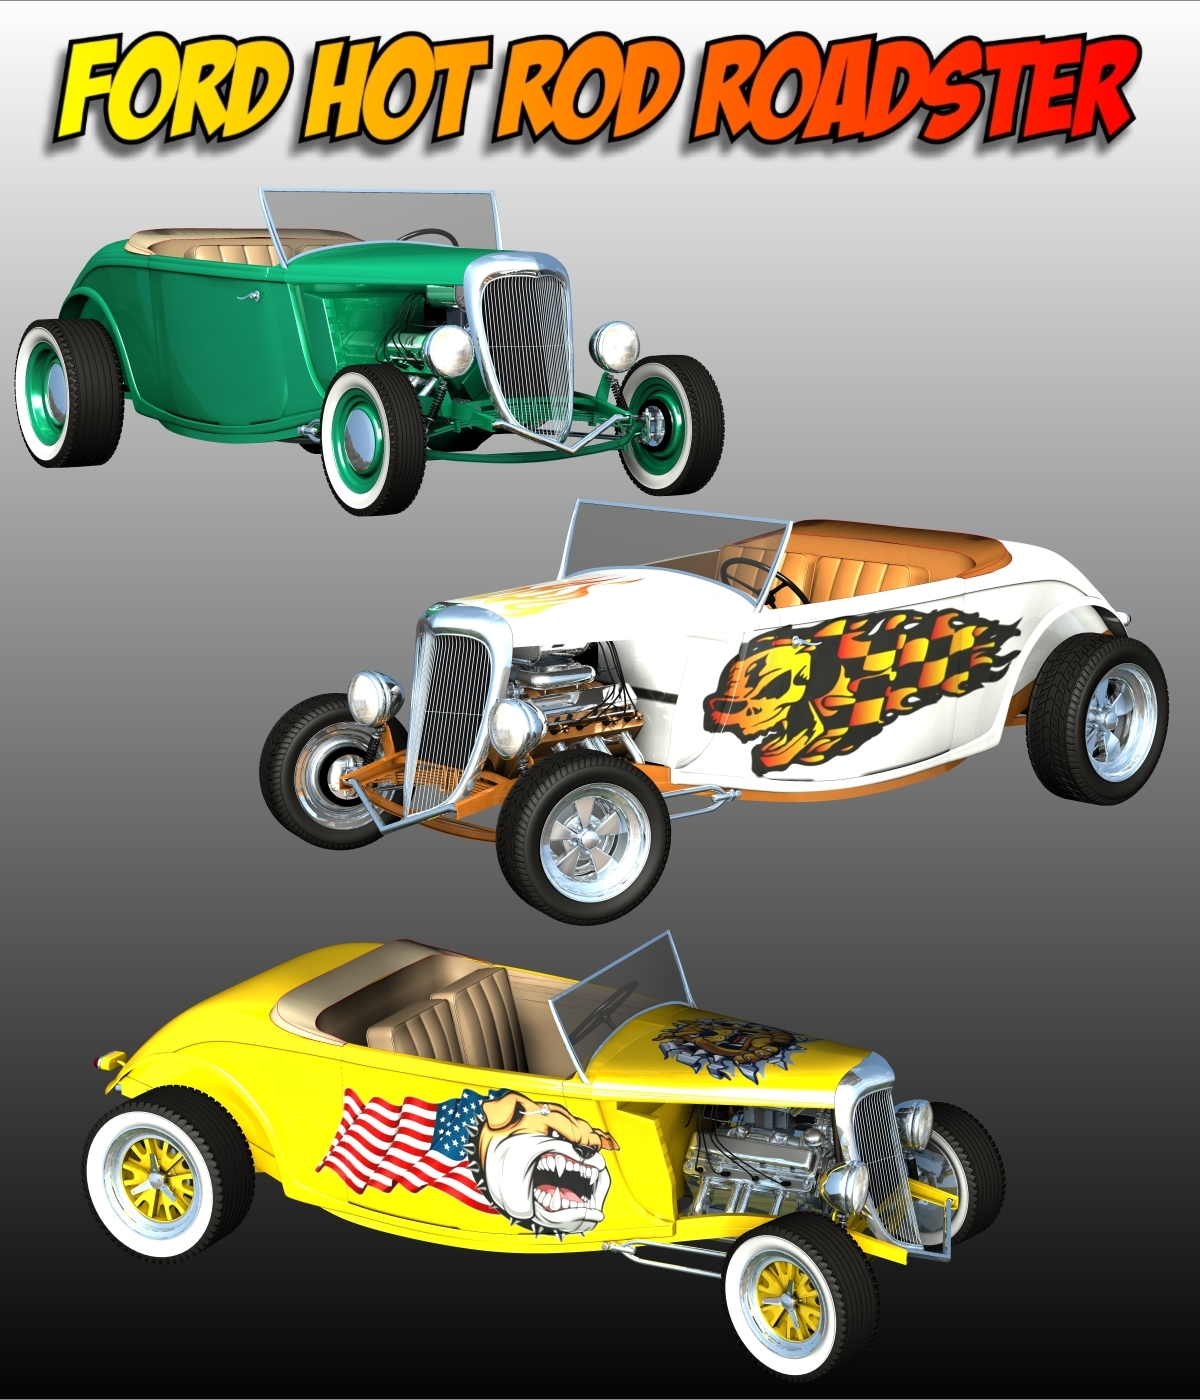 FORD HOT ROD ROADSTER by 3DClassics